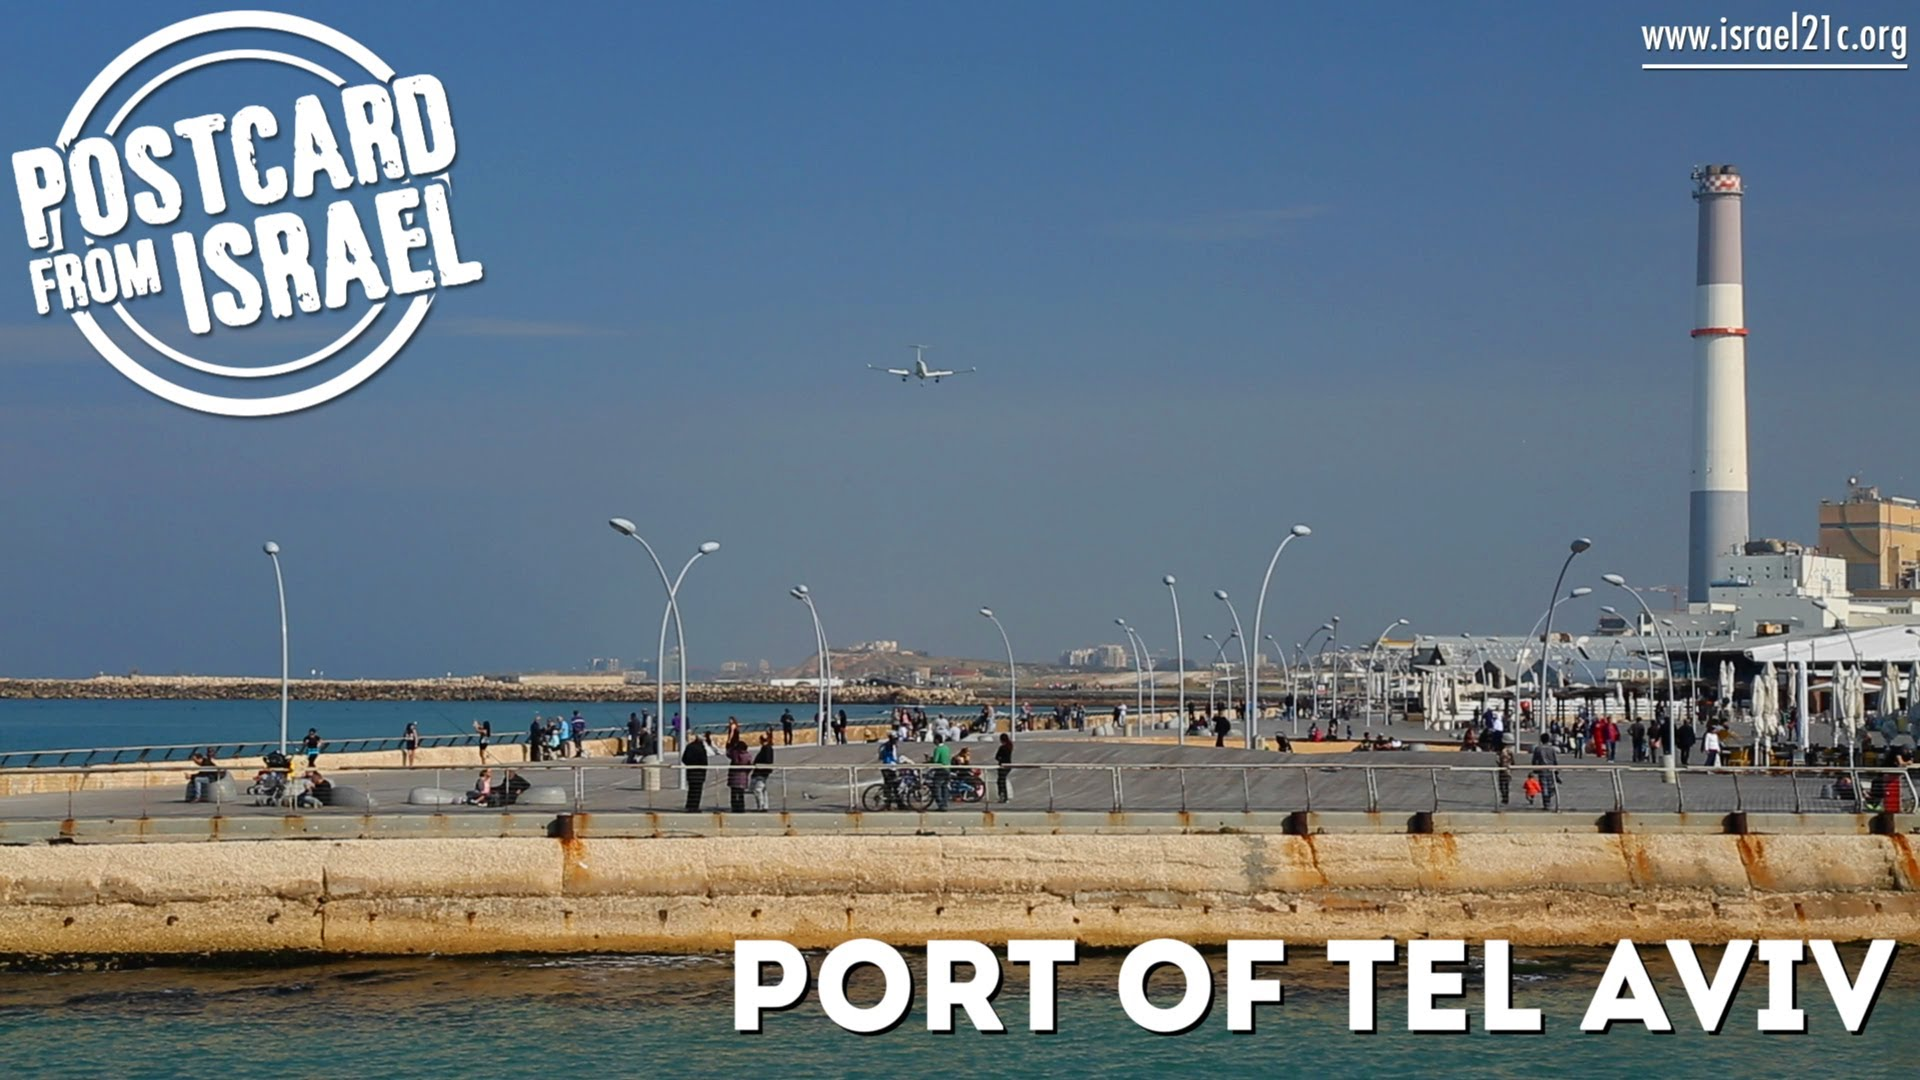 Postcard from Israel: Port of Tel Aviv